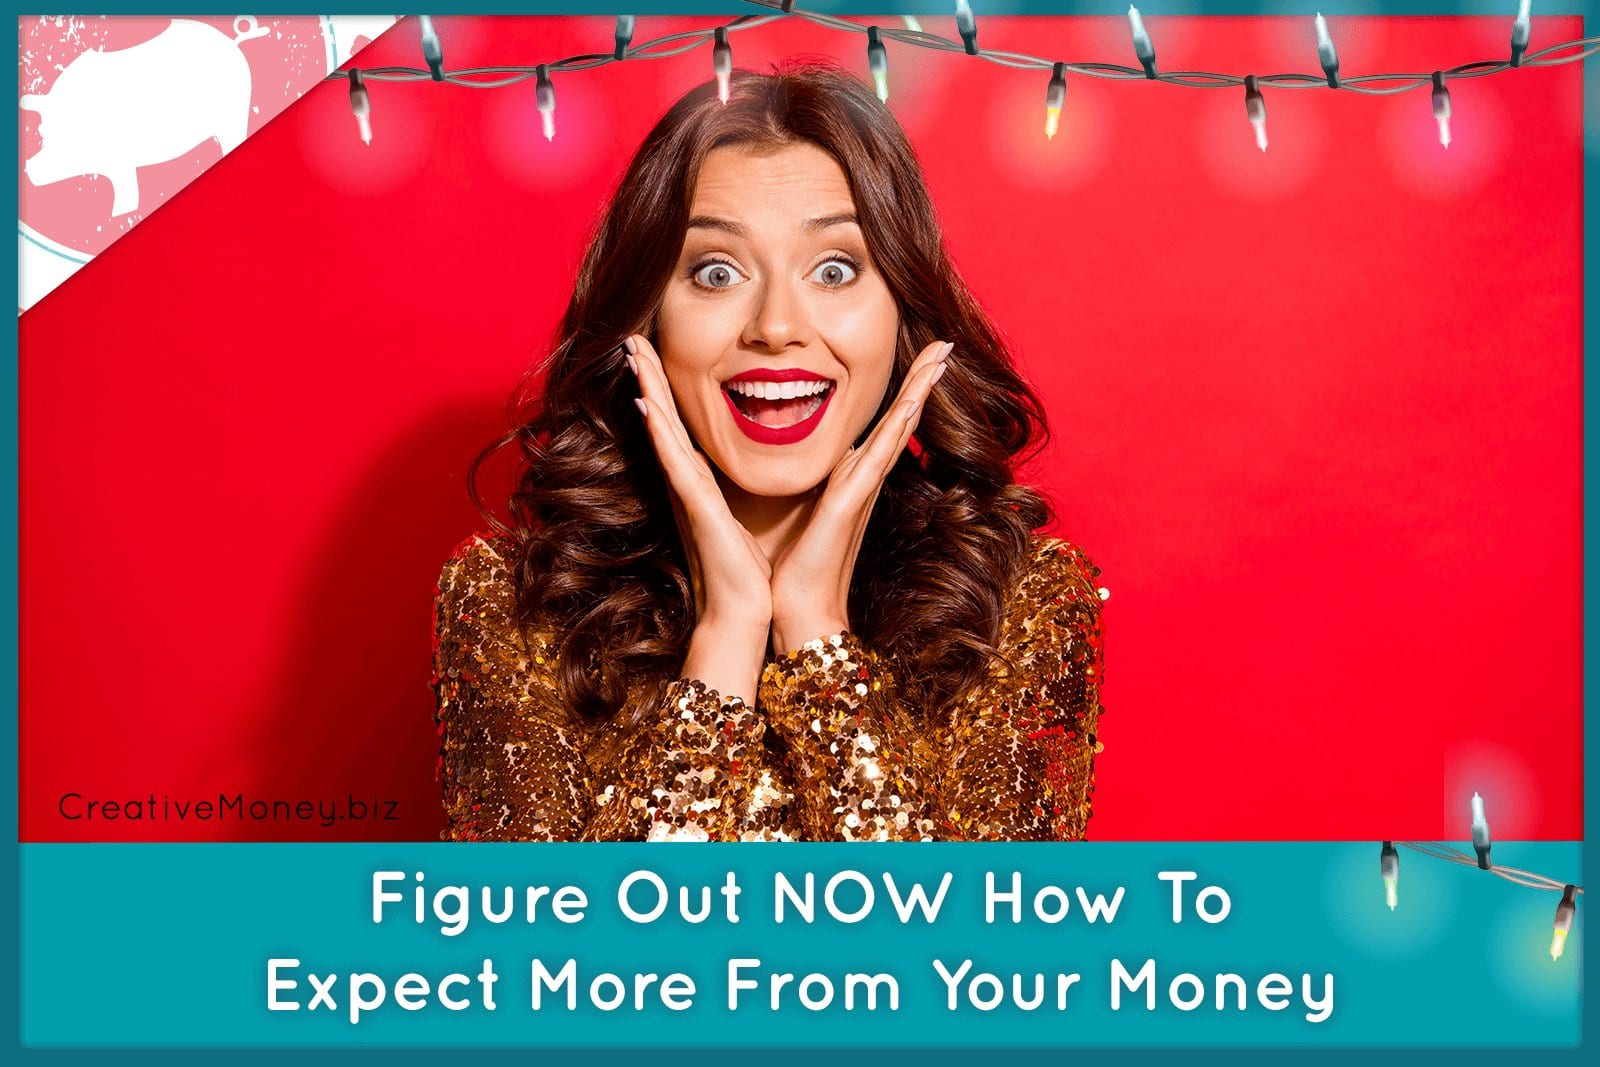 Figure Out NOW How to Expect More From Your Money